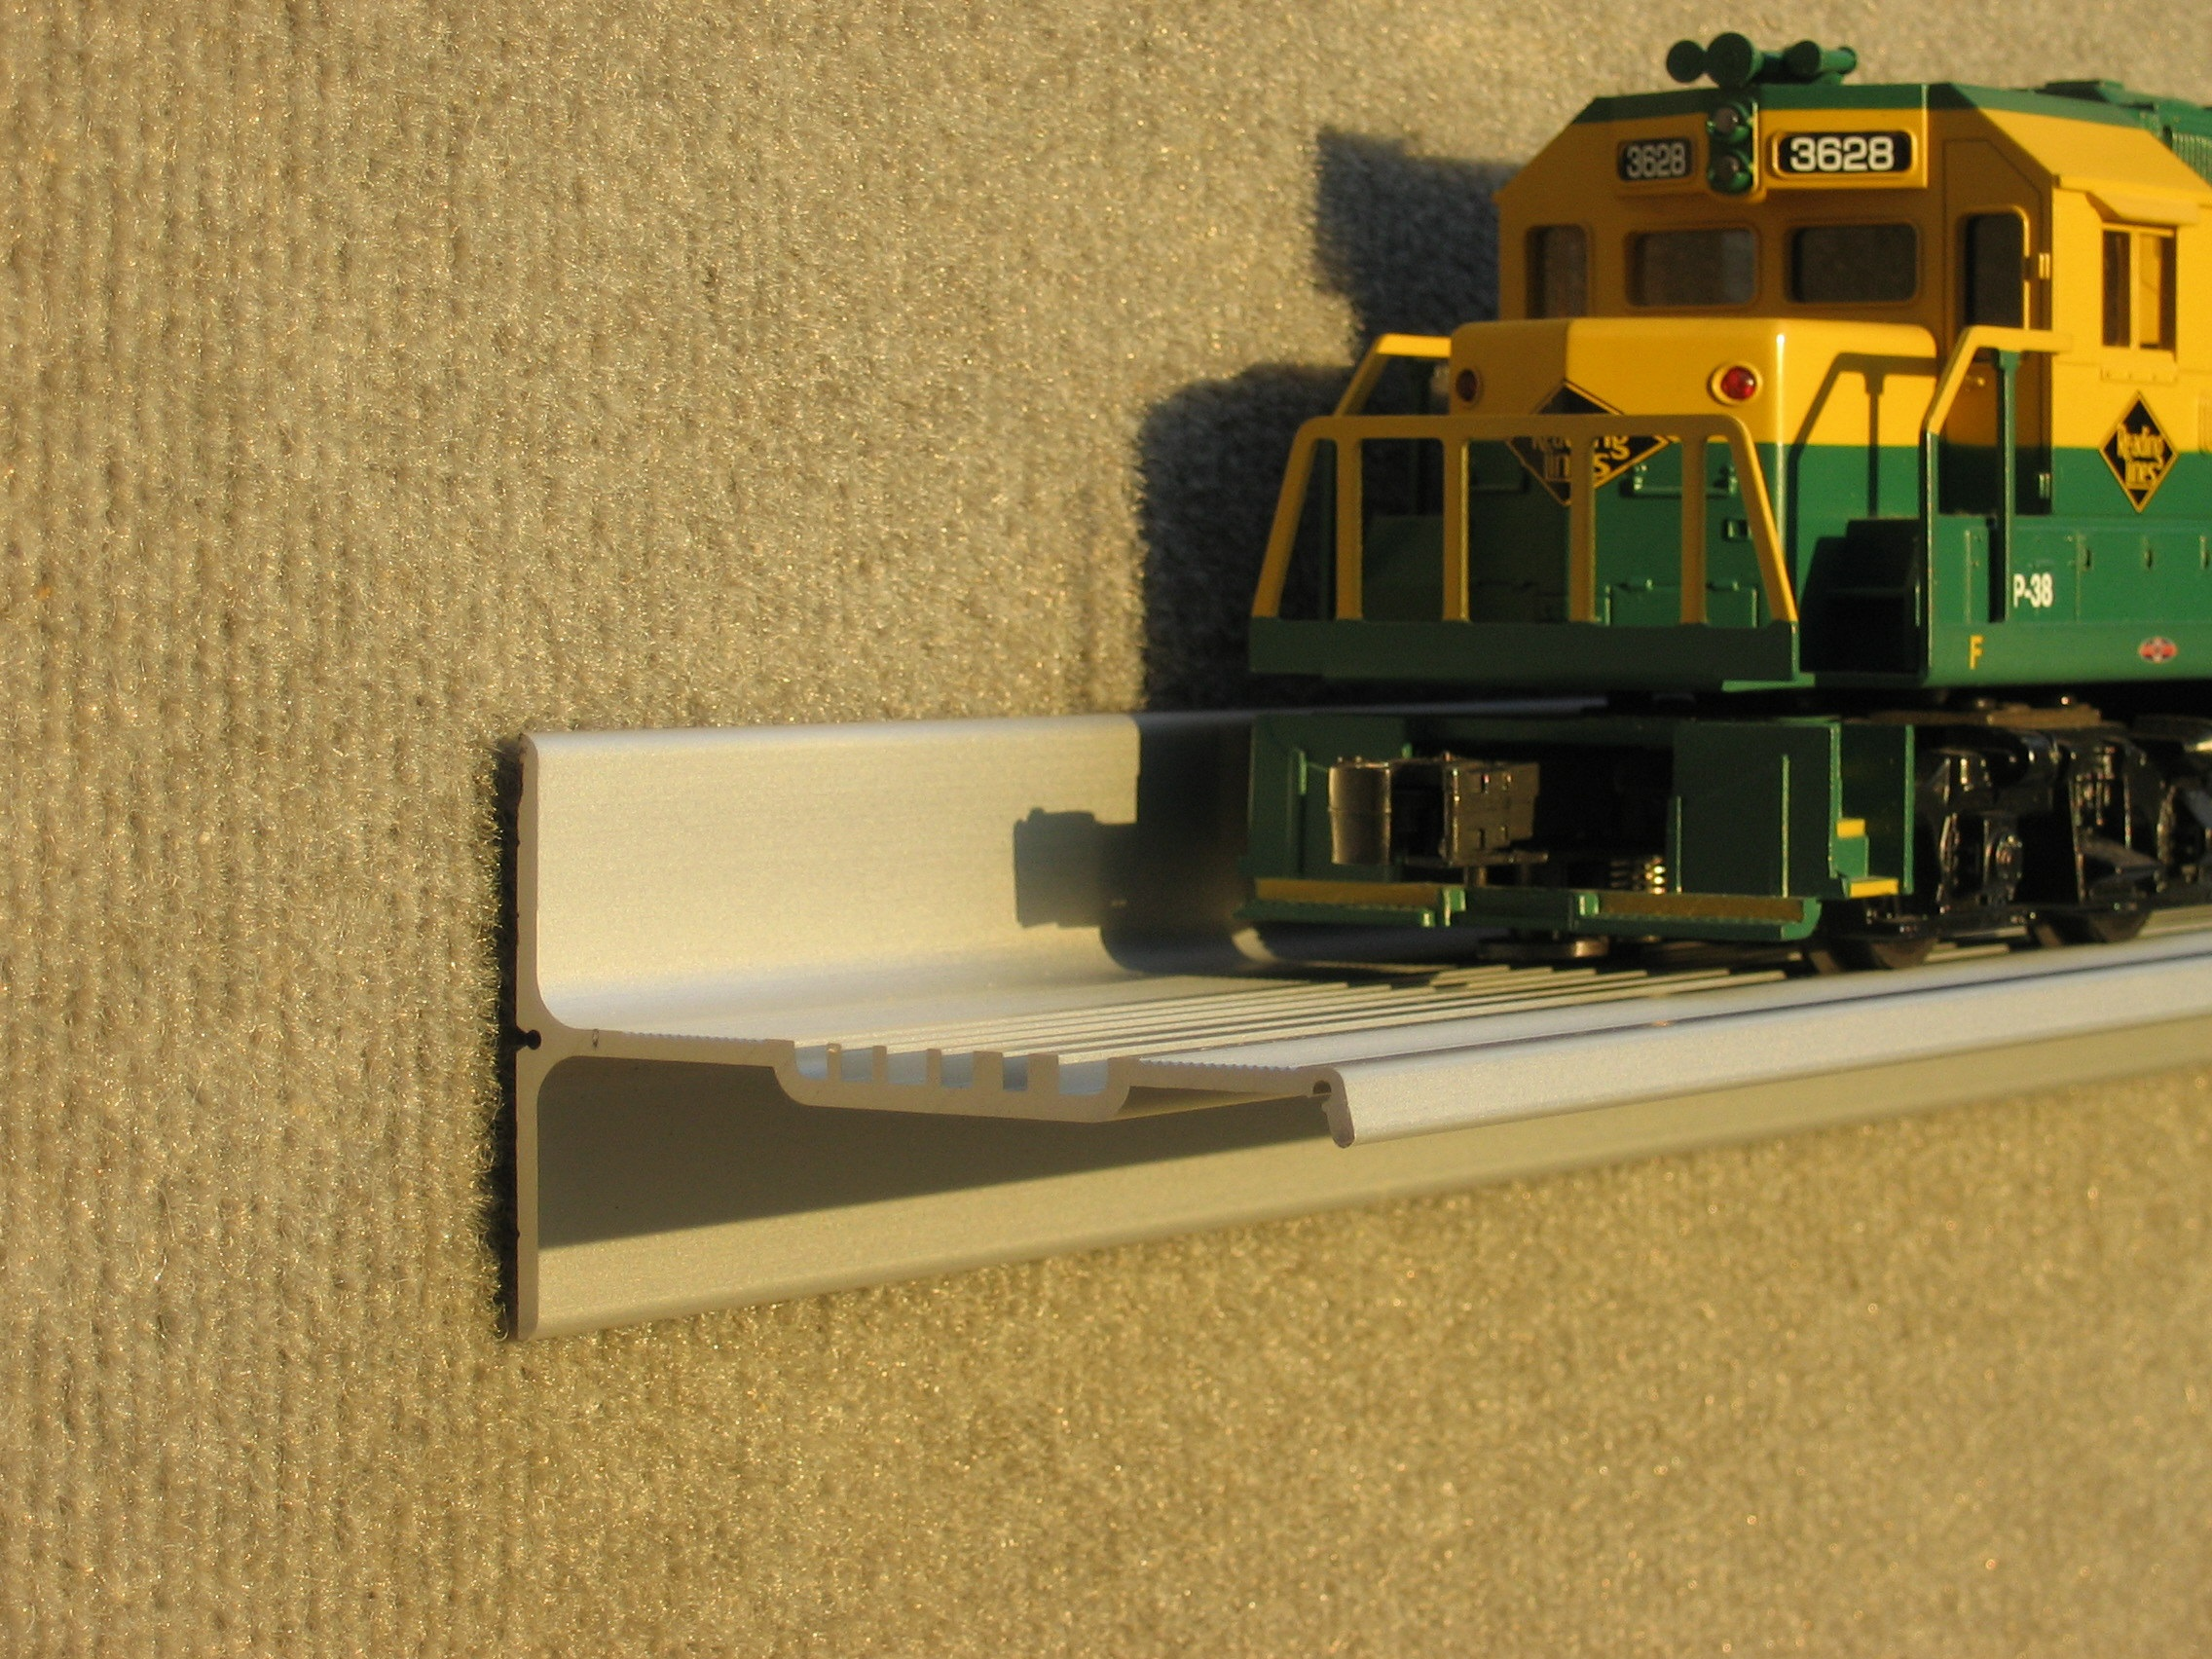 img jkoch layout by page my powered is craft scale g engineer arito shelf layouts trains bedroom train an